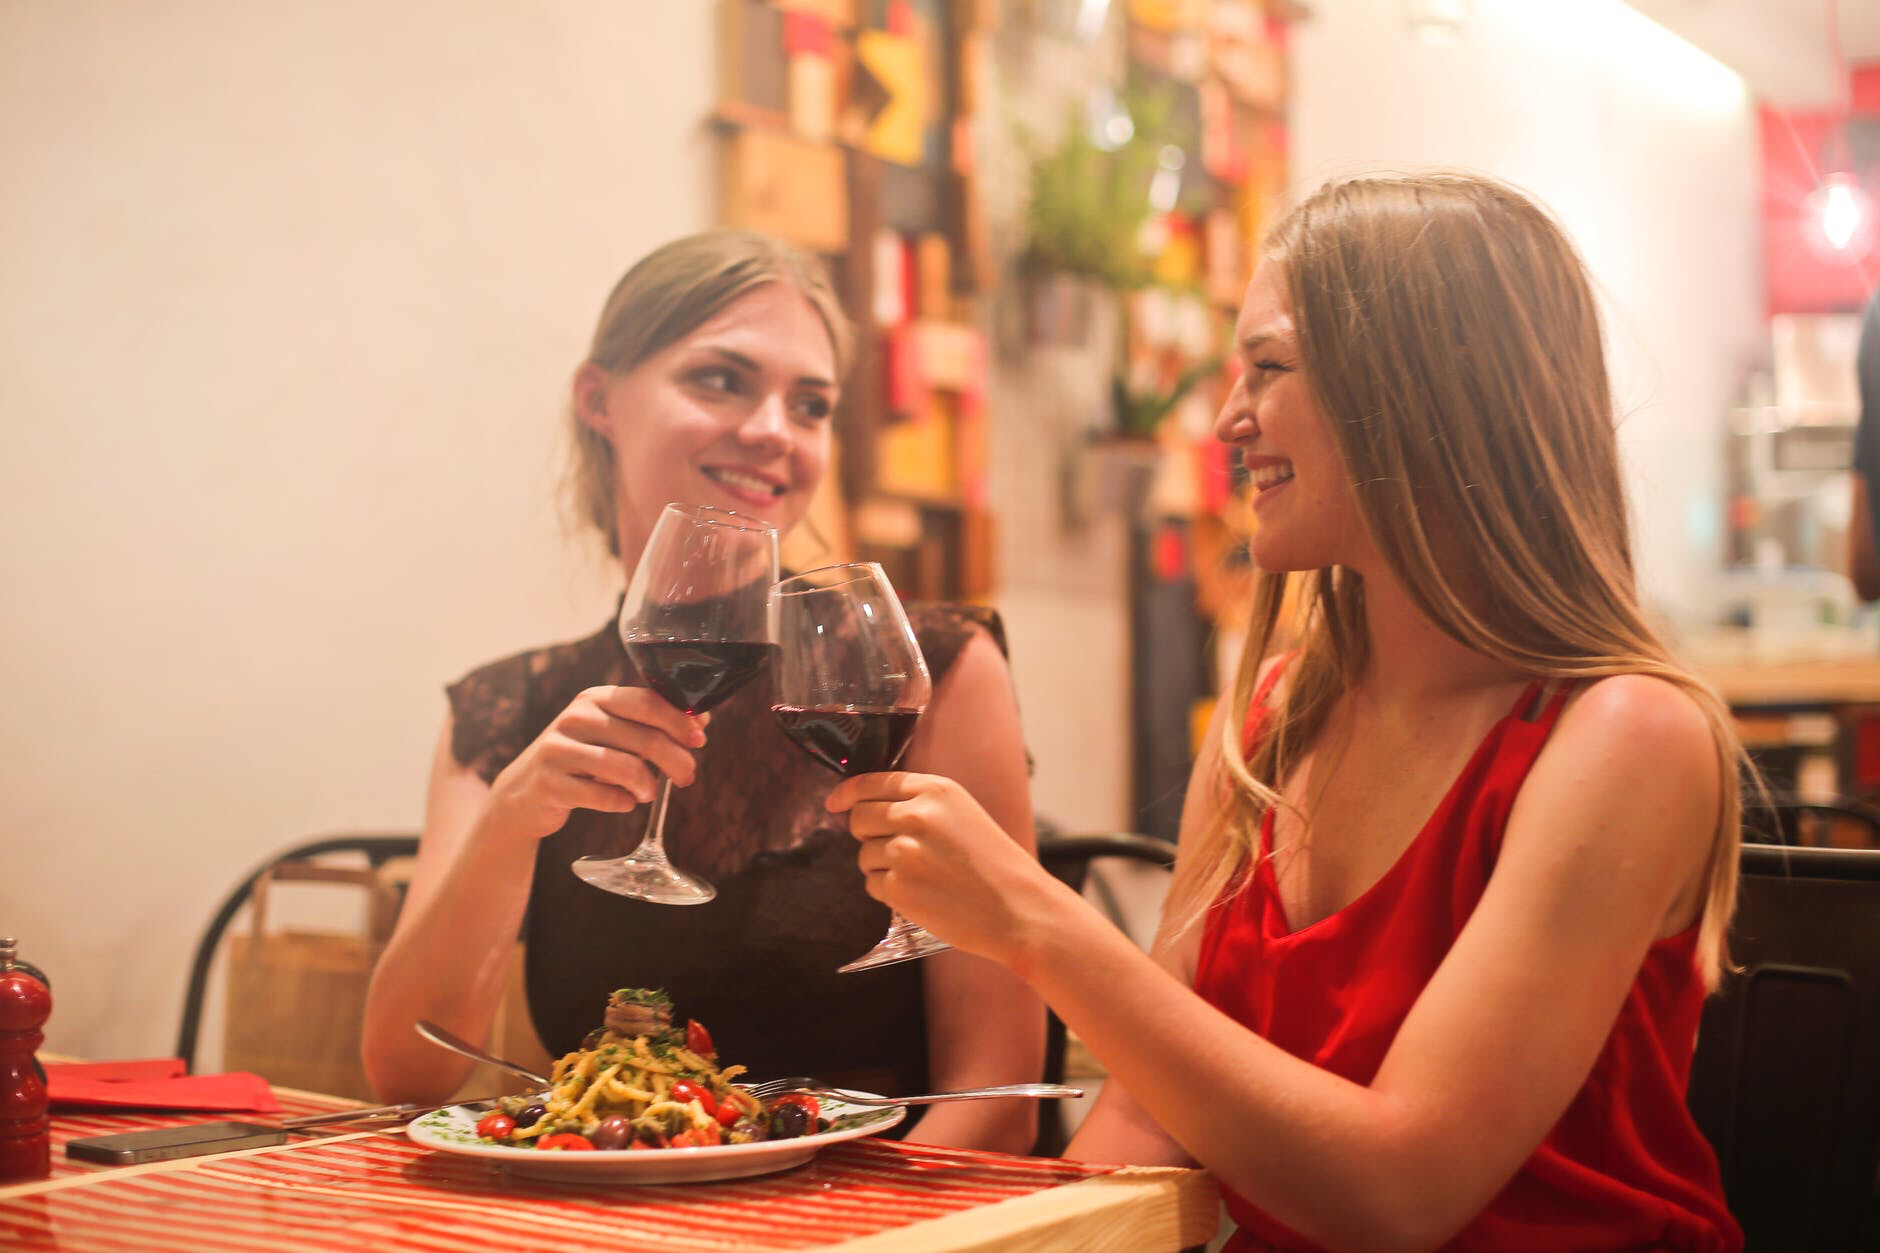 Two women have red wine at dinner